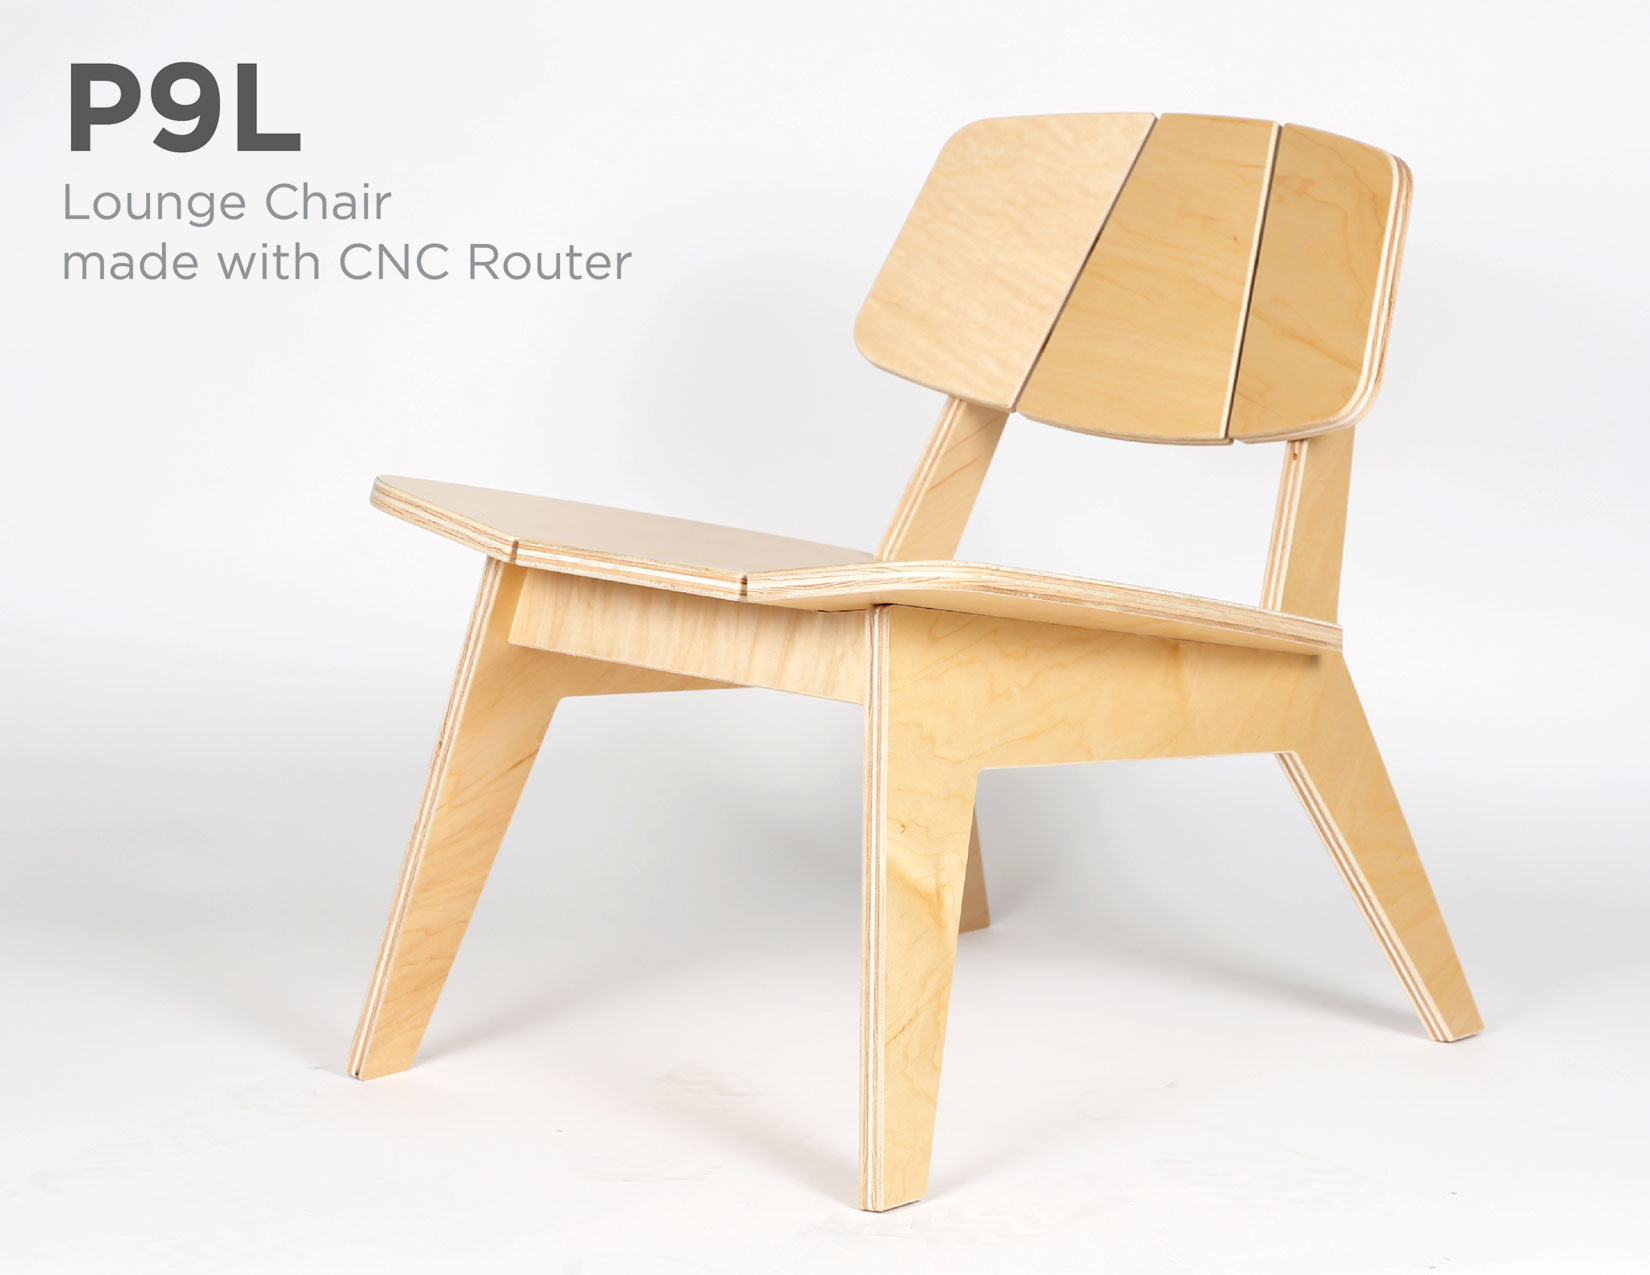 Cheerful One Fairly Easy To You Can Actually Download Diy Instructions Tomake Lounge Chair Alejandro Palandjoglou Main Reasons Is That Cnc Routers Have Become Not Only But furniture Discount Lounge Chair